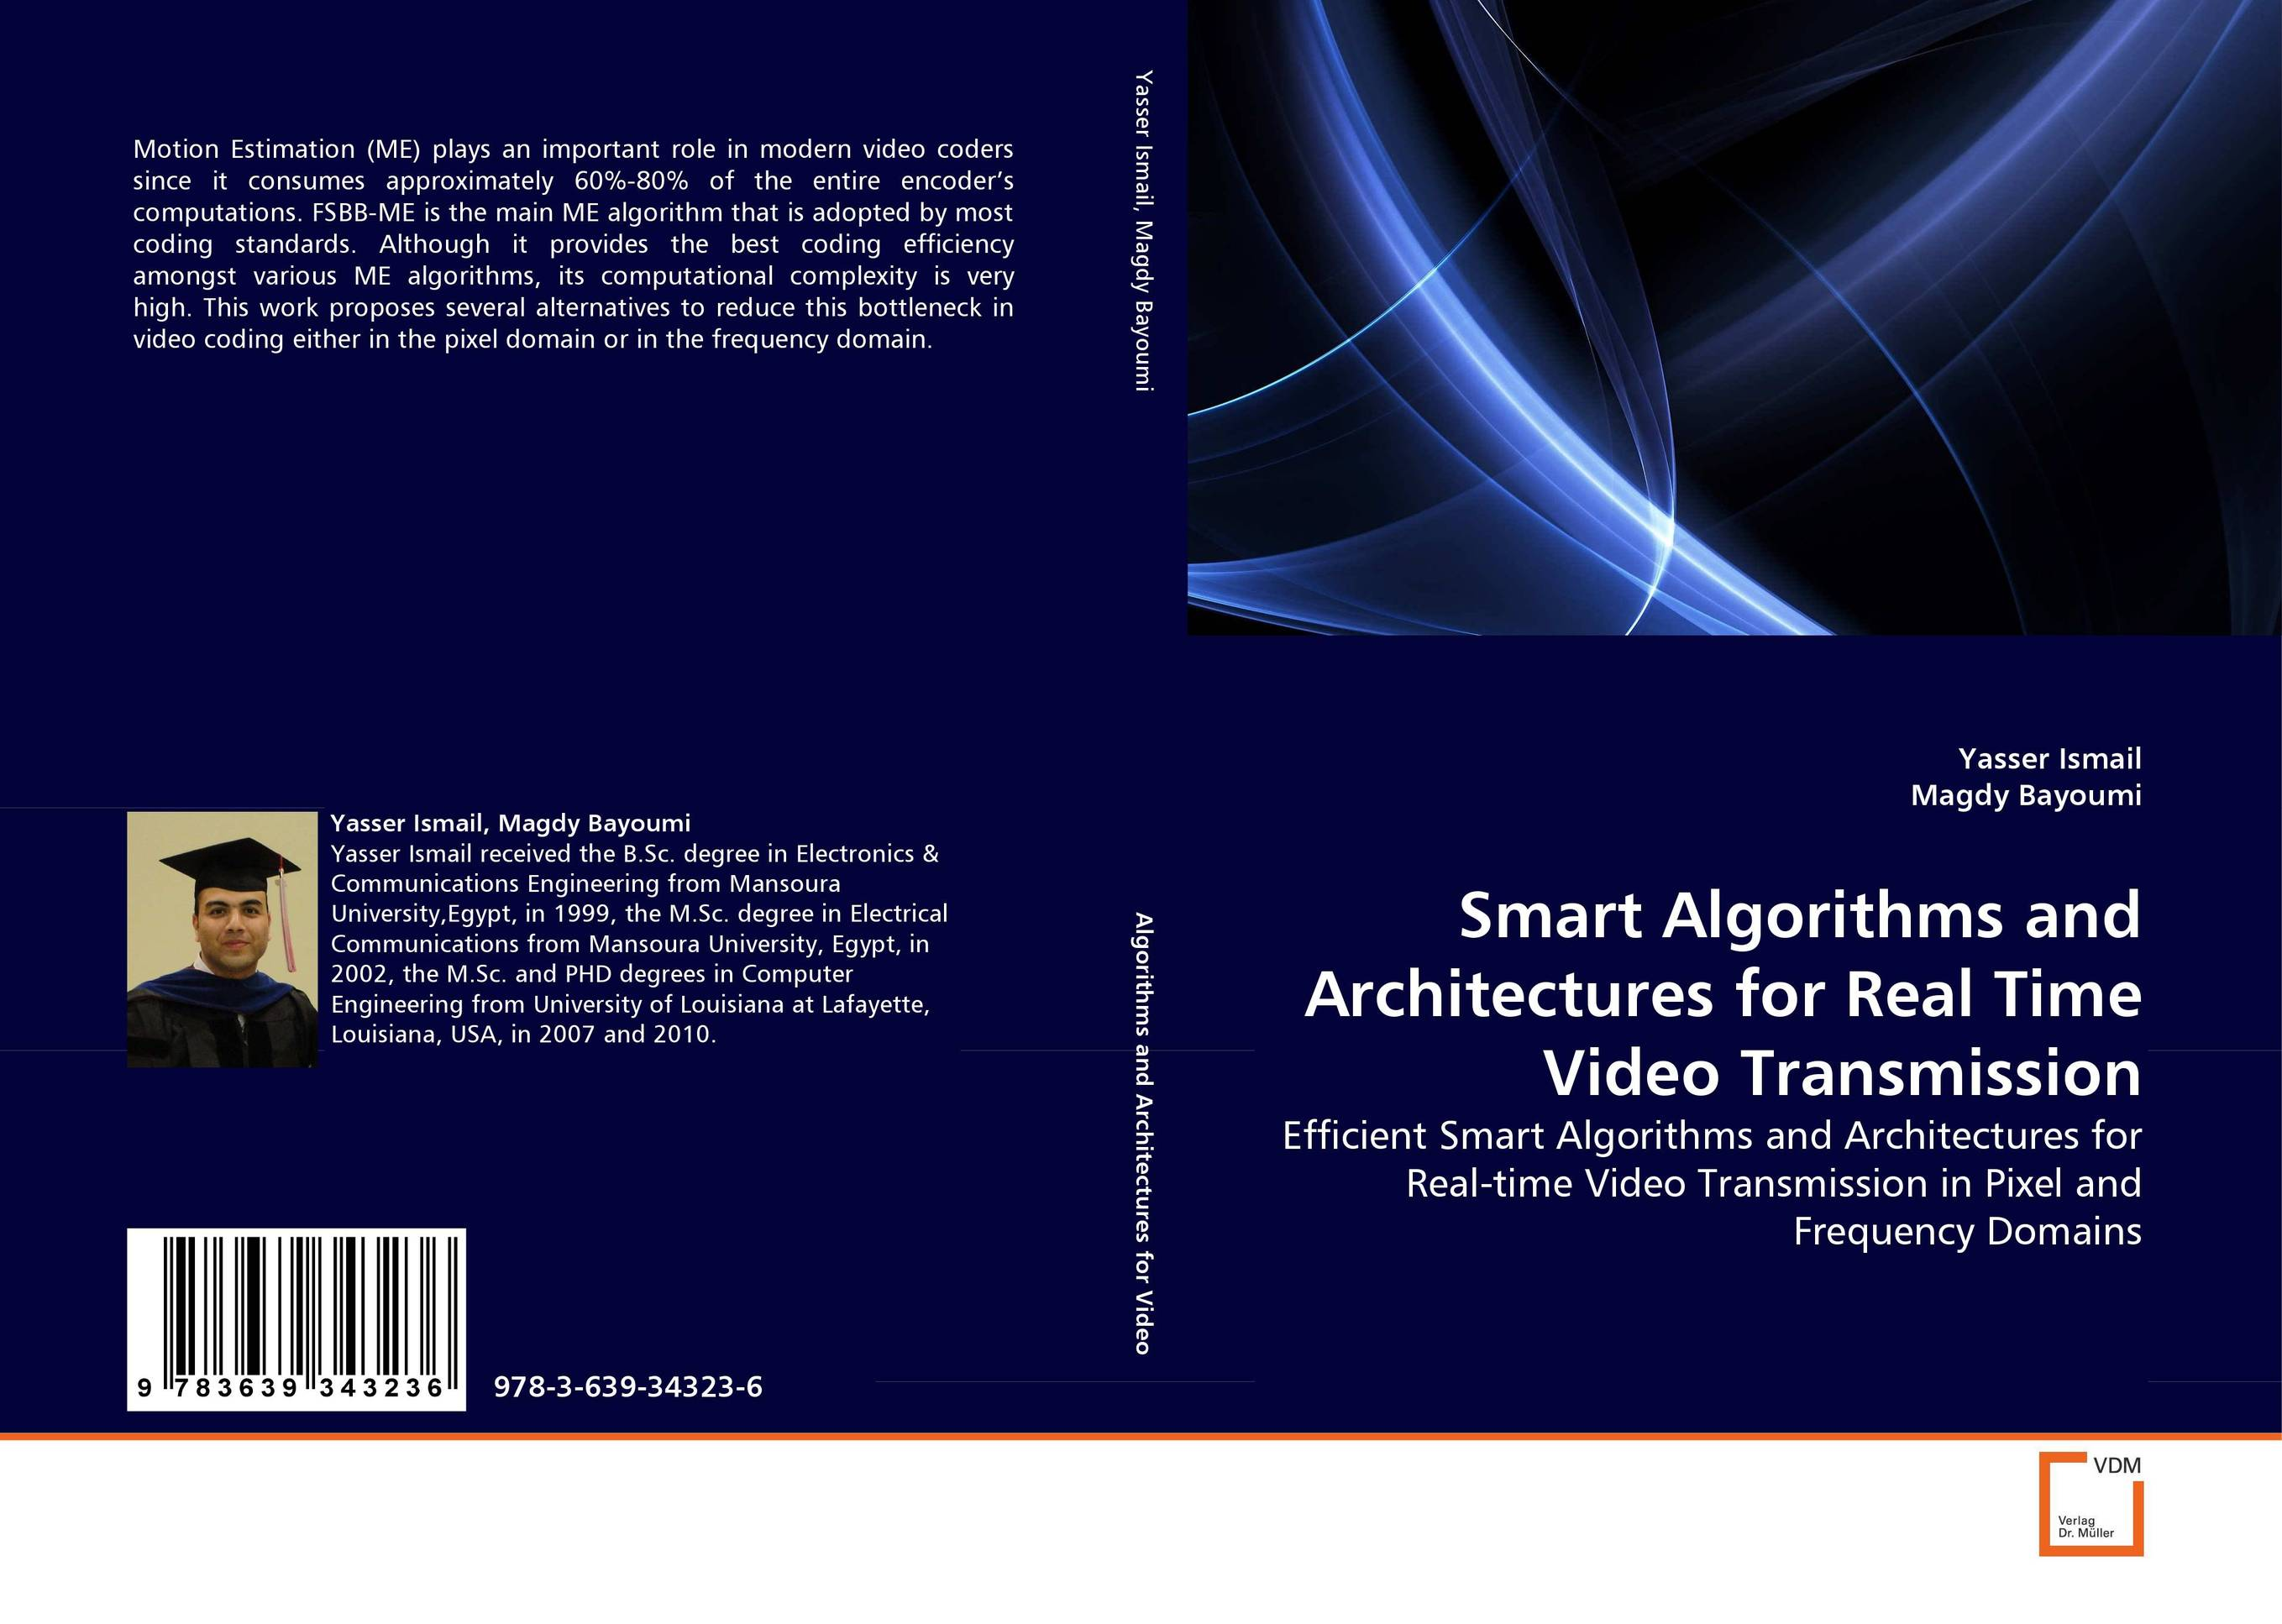 Smart Algorithms and Architectures for Real Time Video Transmission crossroads revisited cd